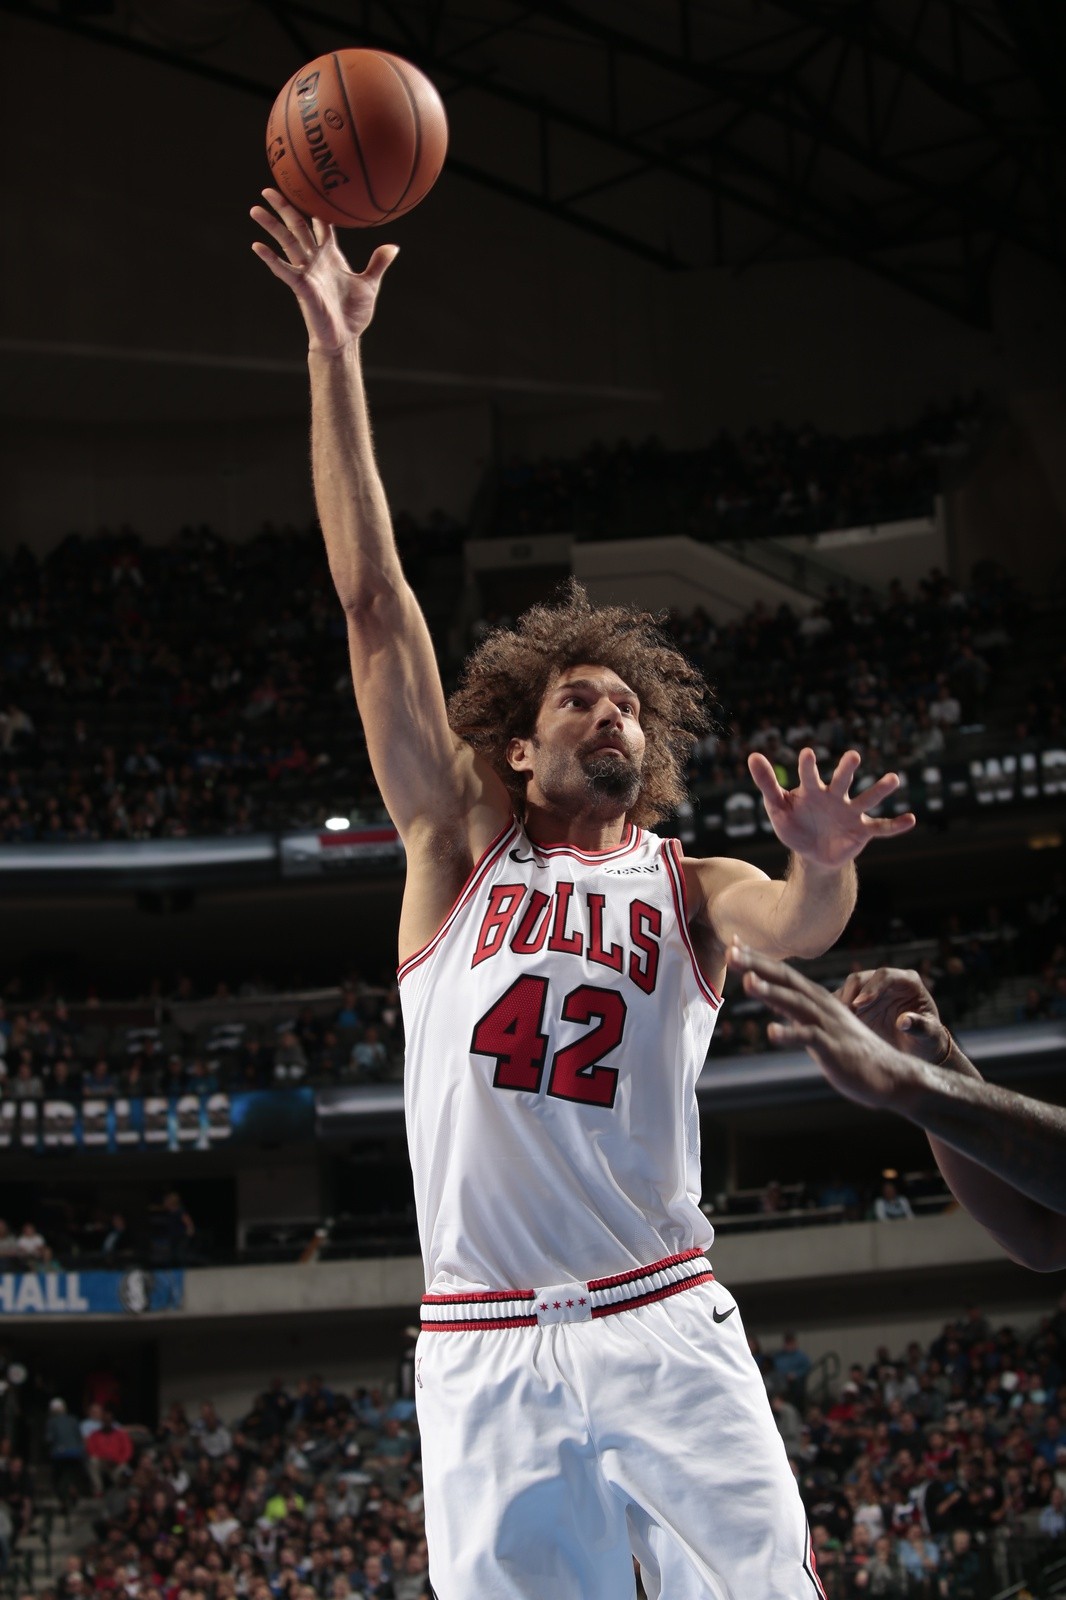 Robin Lopez #42 of the Chicago Bulls shoots the ball against the Dallas Mavericks during a game on October 22, 2018 at American Airlines Center in Dallas, Texas.